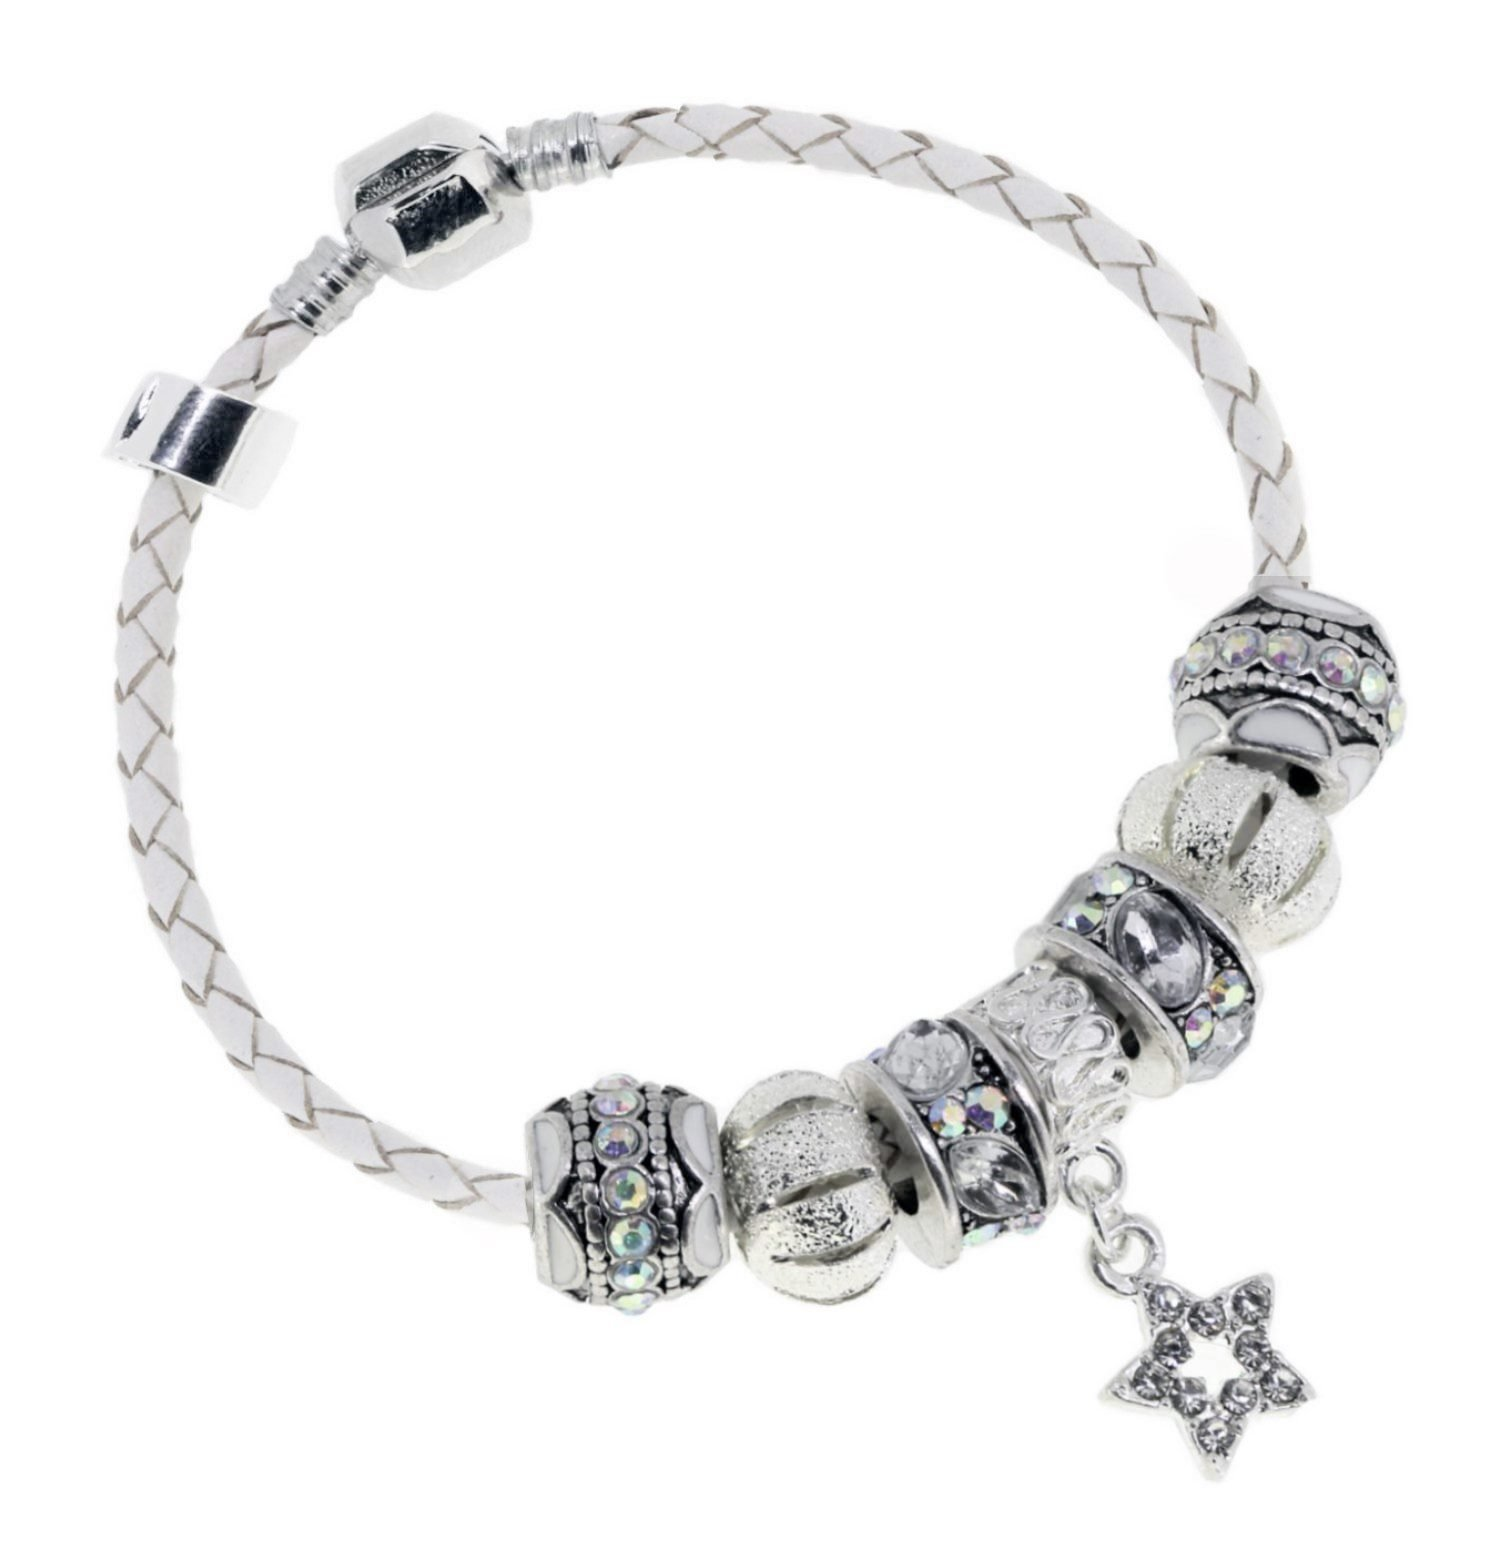 Truly Charming Happy Birthday Leather Charm Bracelet European Style Gift Boxed (21cm)